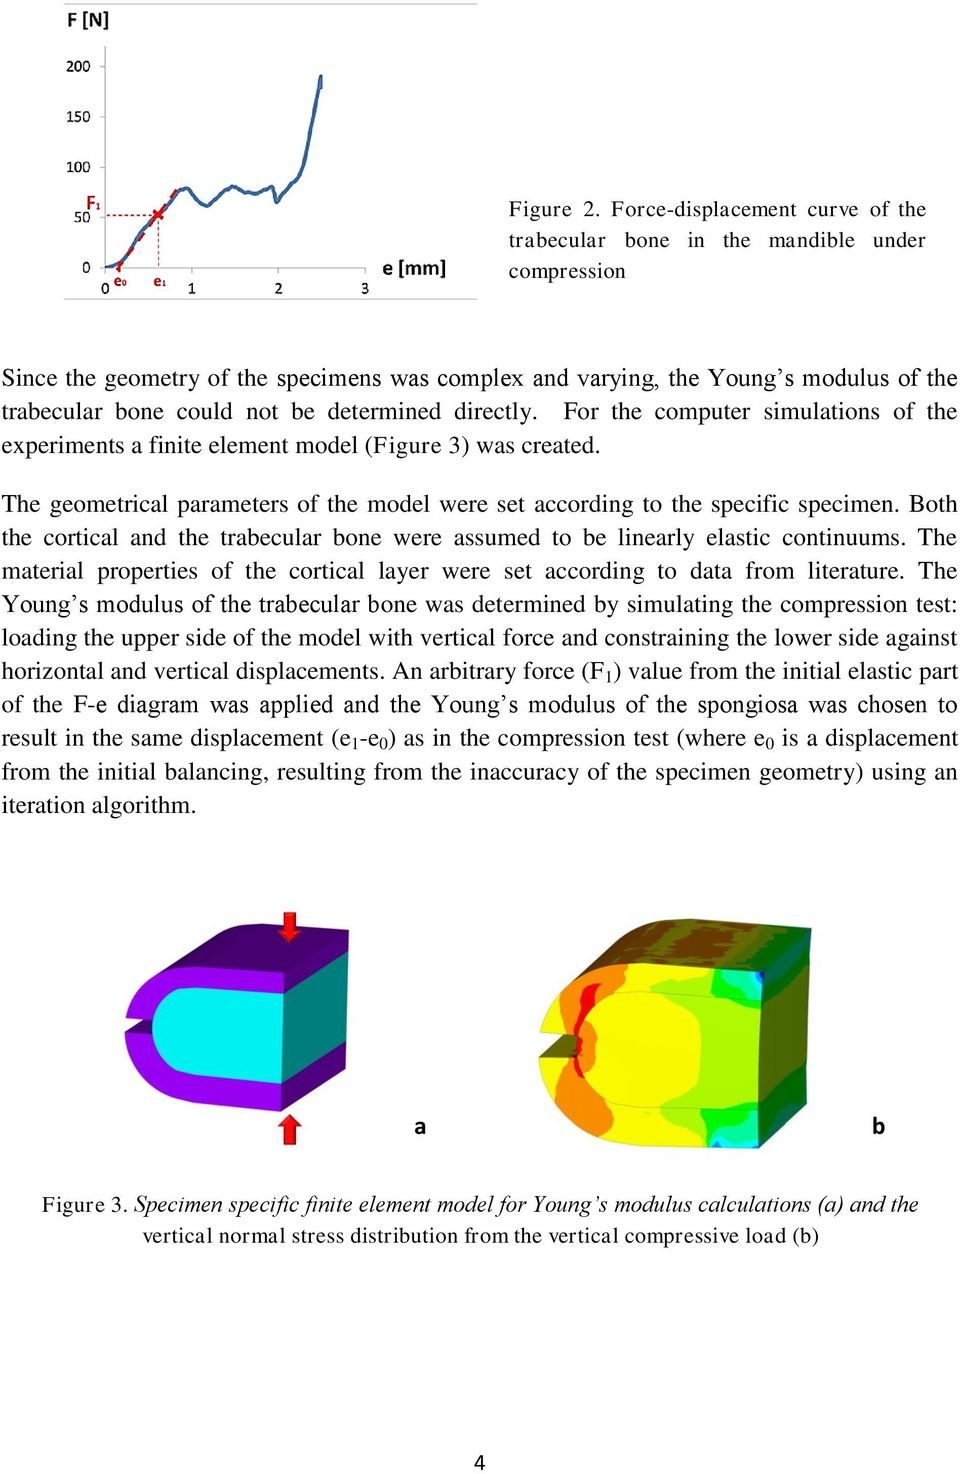 determined directly. For the computer simulations of the experiments a finite element model (Figure 3) was created. The geometrical parameters of the model were set according to the specific specimen.